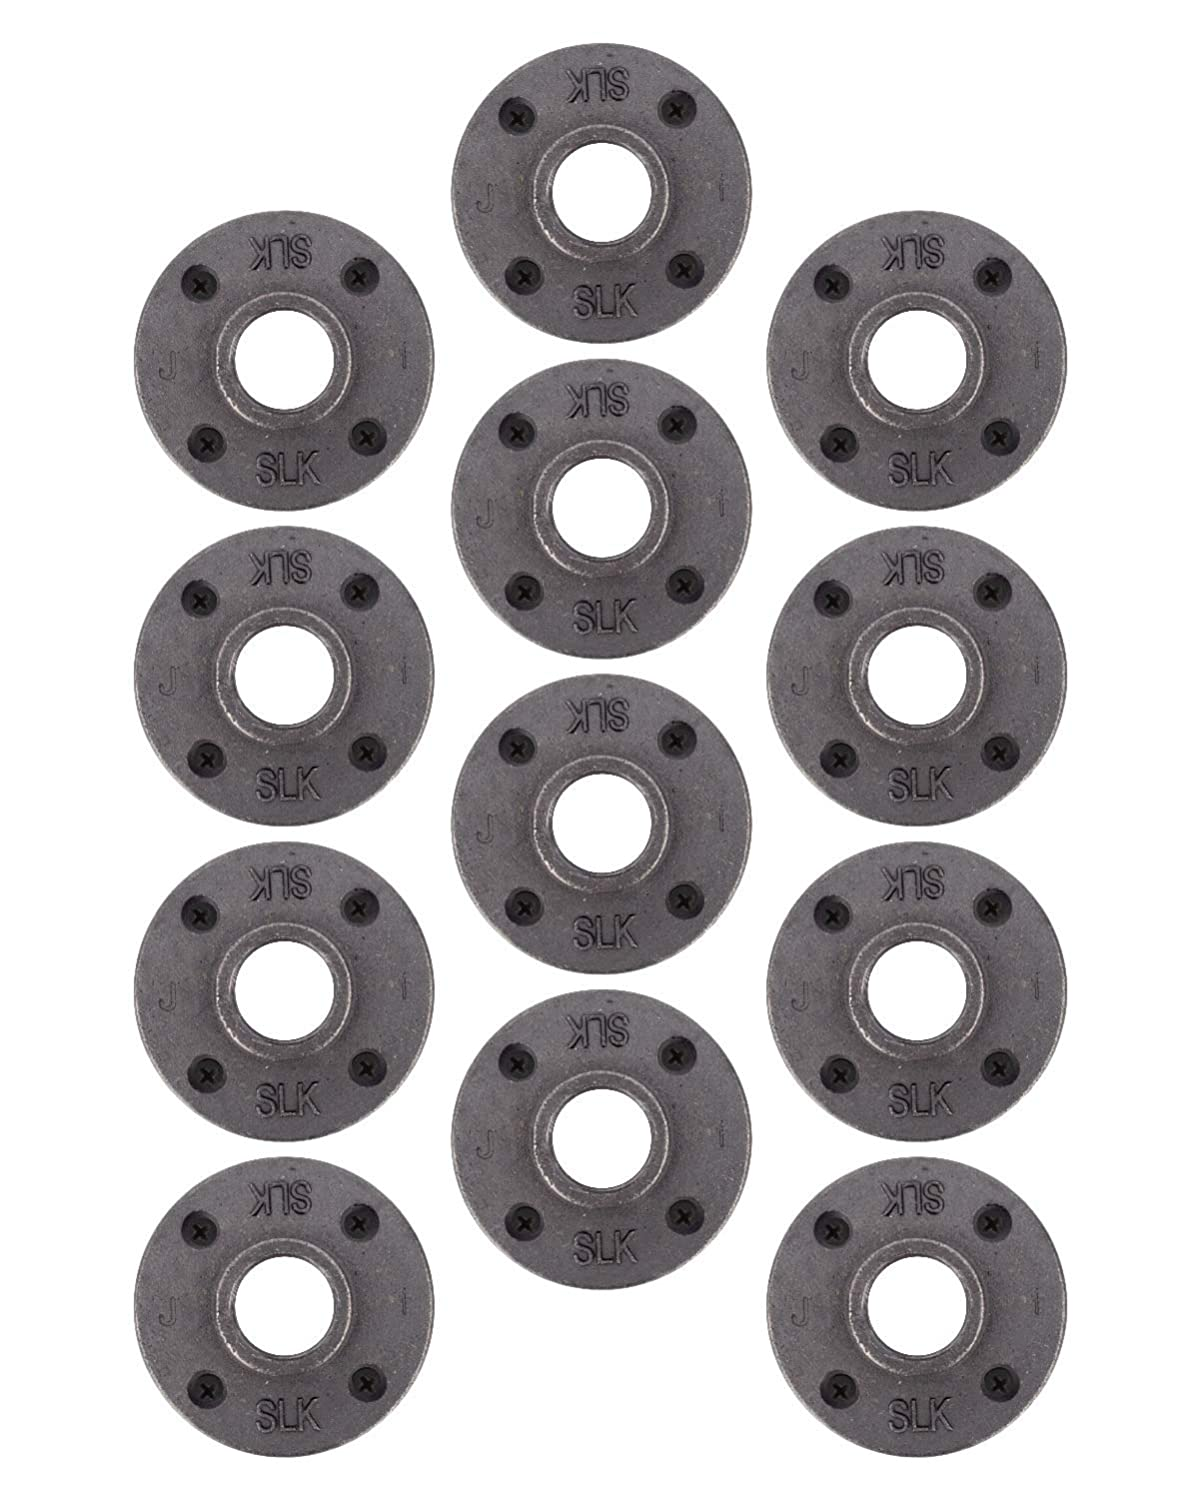 """Pipe Decor 1"""" Malleable Cast Iron Floor Flange 12 Pack, Industrial Steel Grey Fits Standard Half Inch Threaded Black Pipes and Fittings, Build Vintage DIY Furniture Shelving, Twelve Plumbing Flanges"""